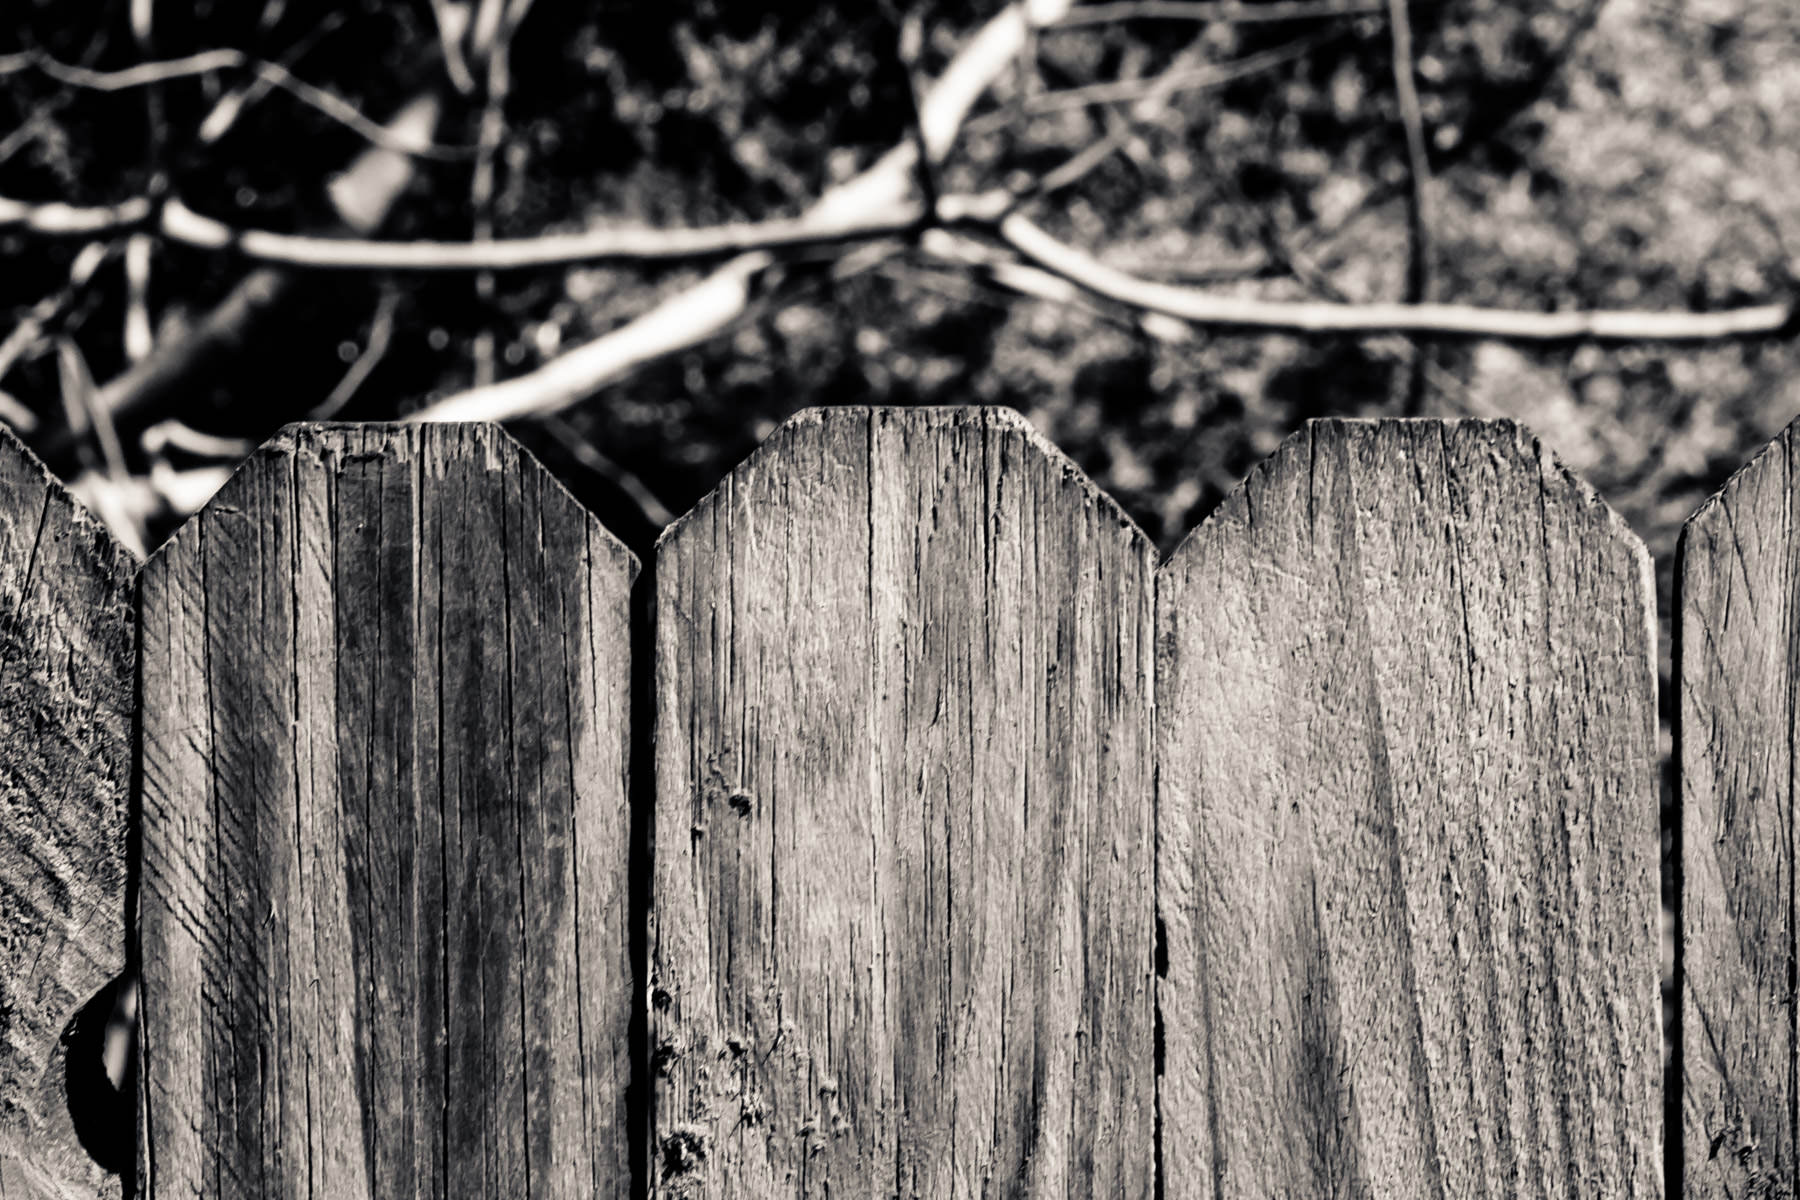 The tops of planks making up a wooden fence, somewhere in Tyler, Texas.